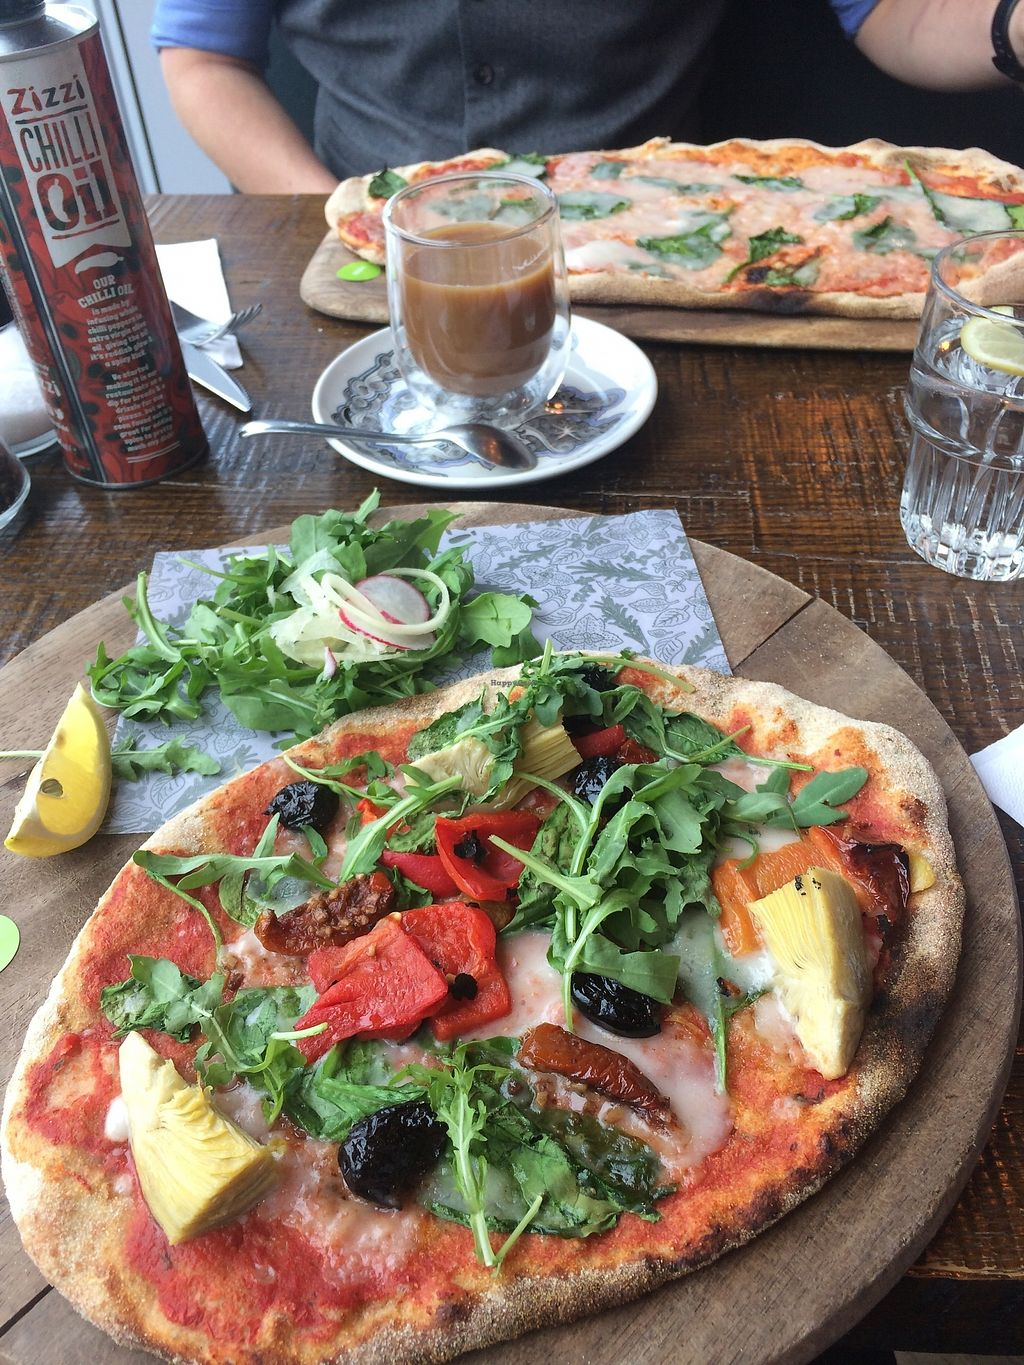 """Photo of Zizzi - Birstall  by <a href=""""/members/profile/Hoggy"""">Hoggy</a> <br/>Top Dish - Vegan 'Rustica pizza' with vegan cheese and spinach.  Bottom Dish - Skinny pizza 'Primavera', veganised, with side of naked slaw.  Also featuring Soya milk Coffee <br/> July 23, 2017  - <a href='/contact/abuse/image/77469/283823'>Report</a>"""